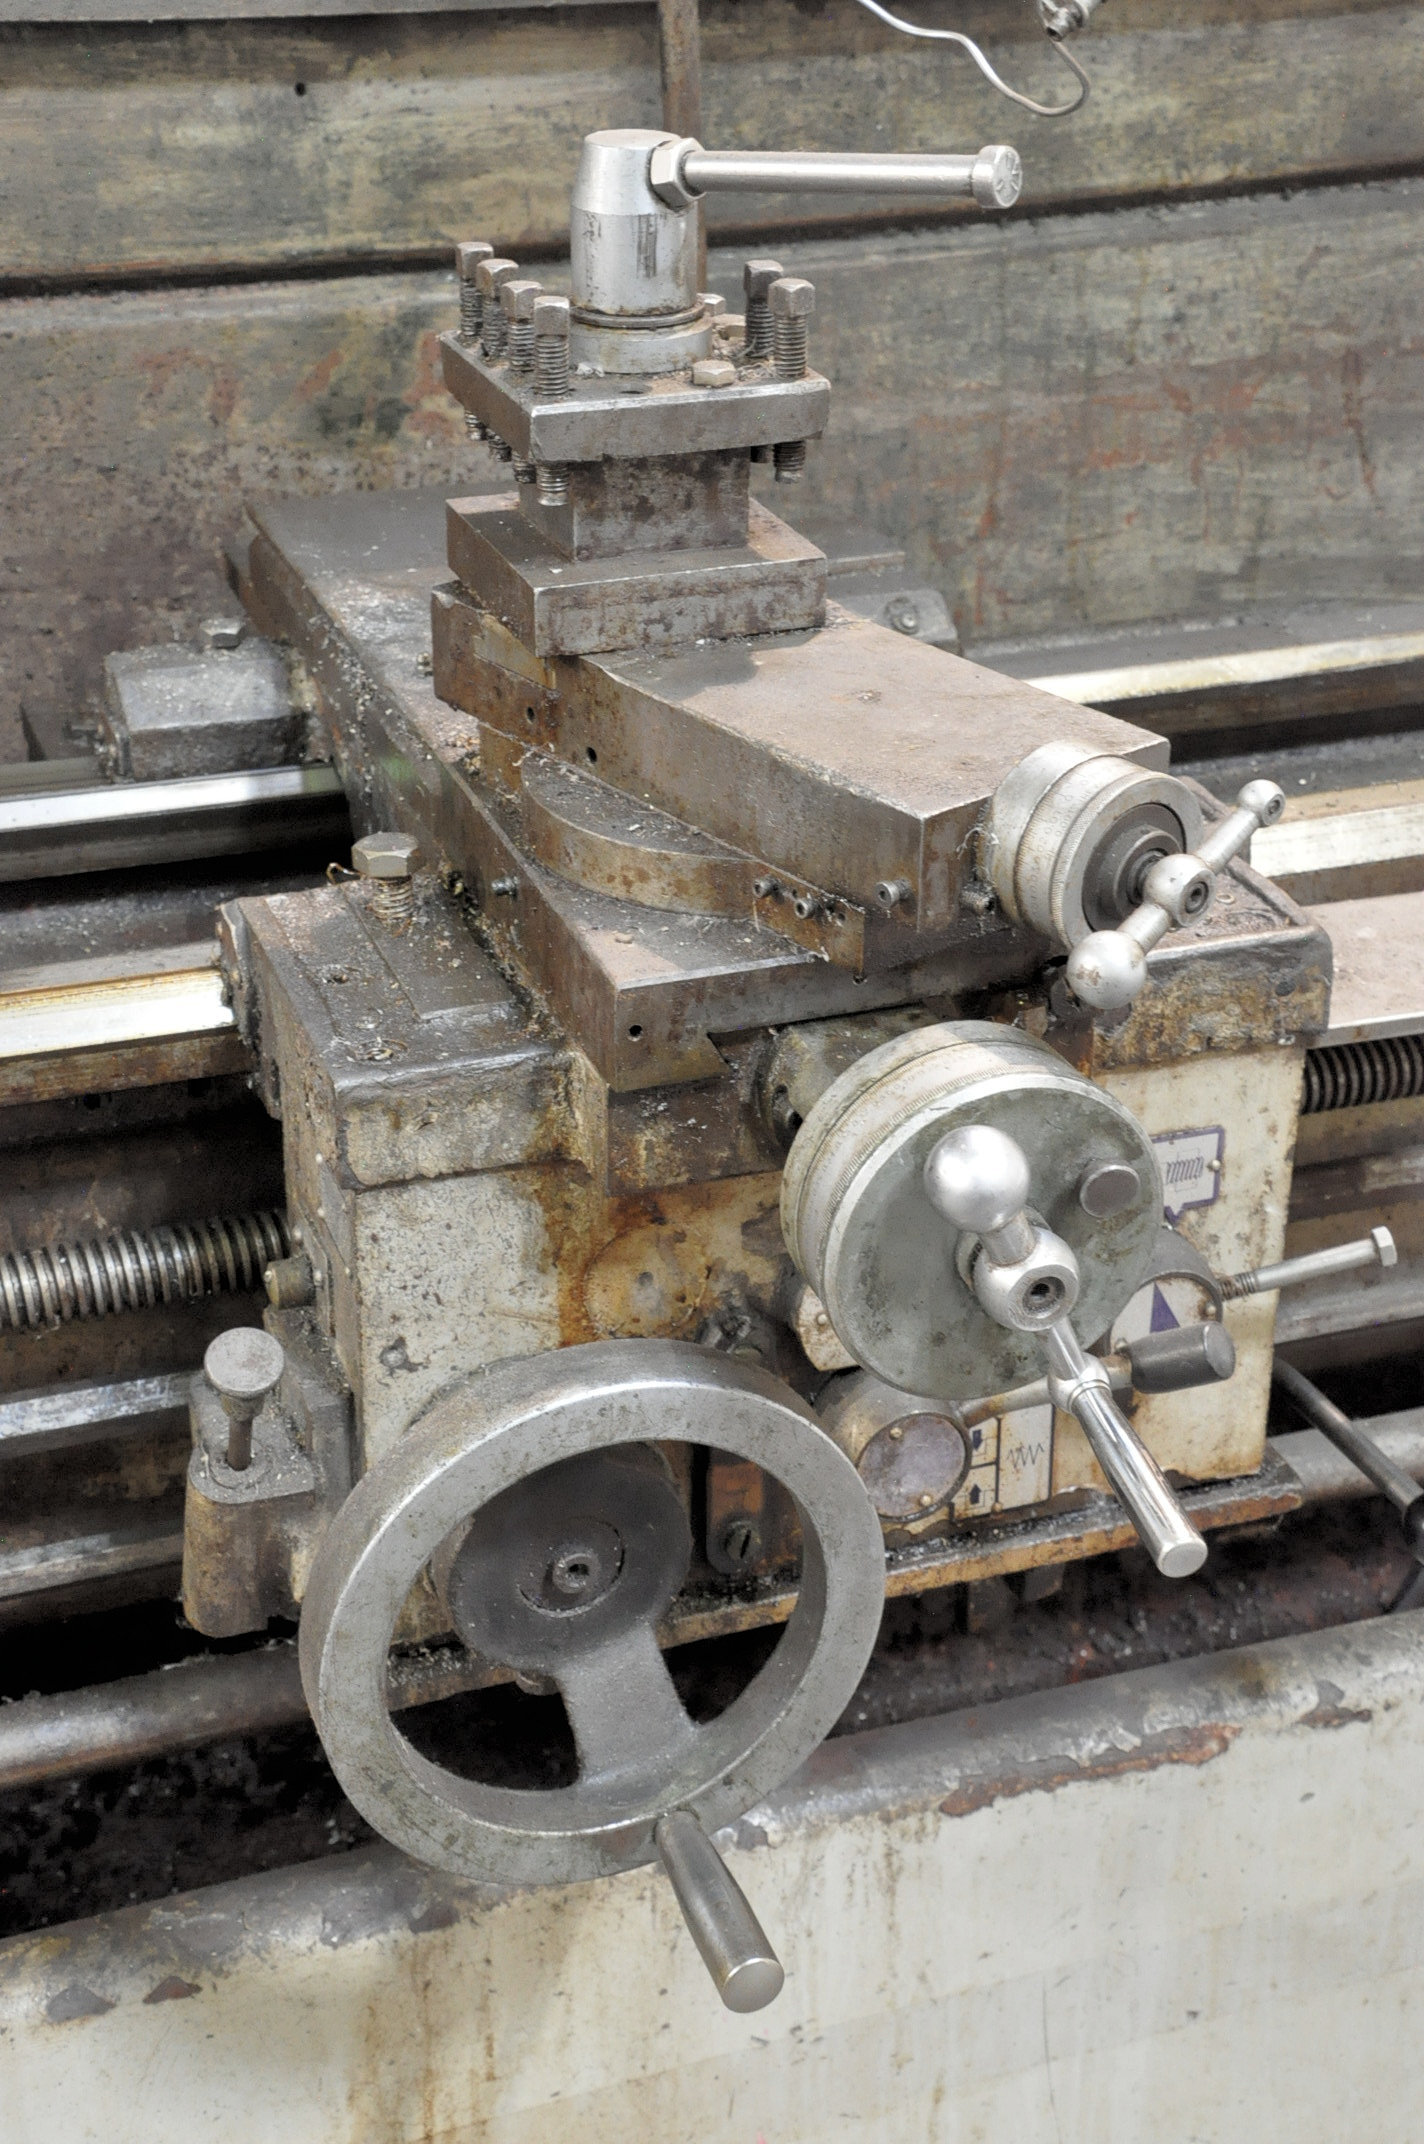 """LS Model 1660G, 16"""" x 60"""" Geared Head Engine Lathe, (1994), 8"""" 3-Jaw Chuck, Tool Post, Tail Stock - Image 5 of 6"""